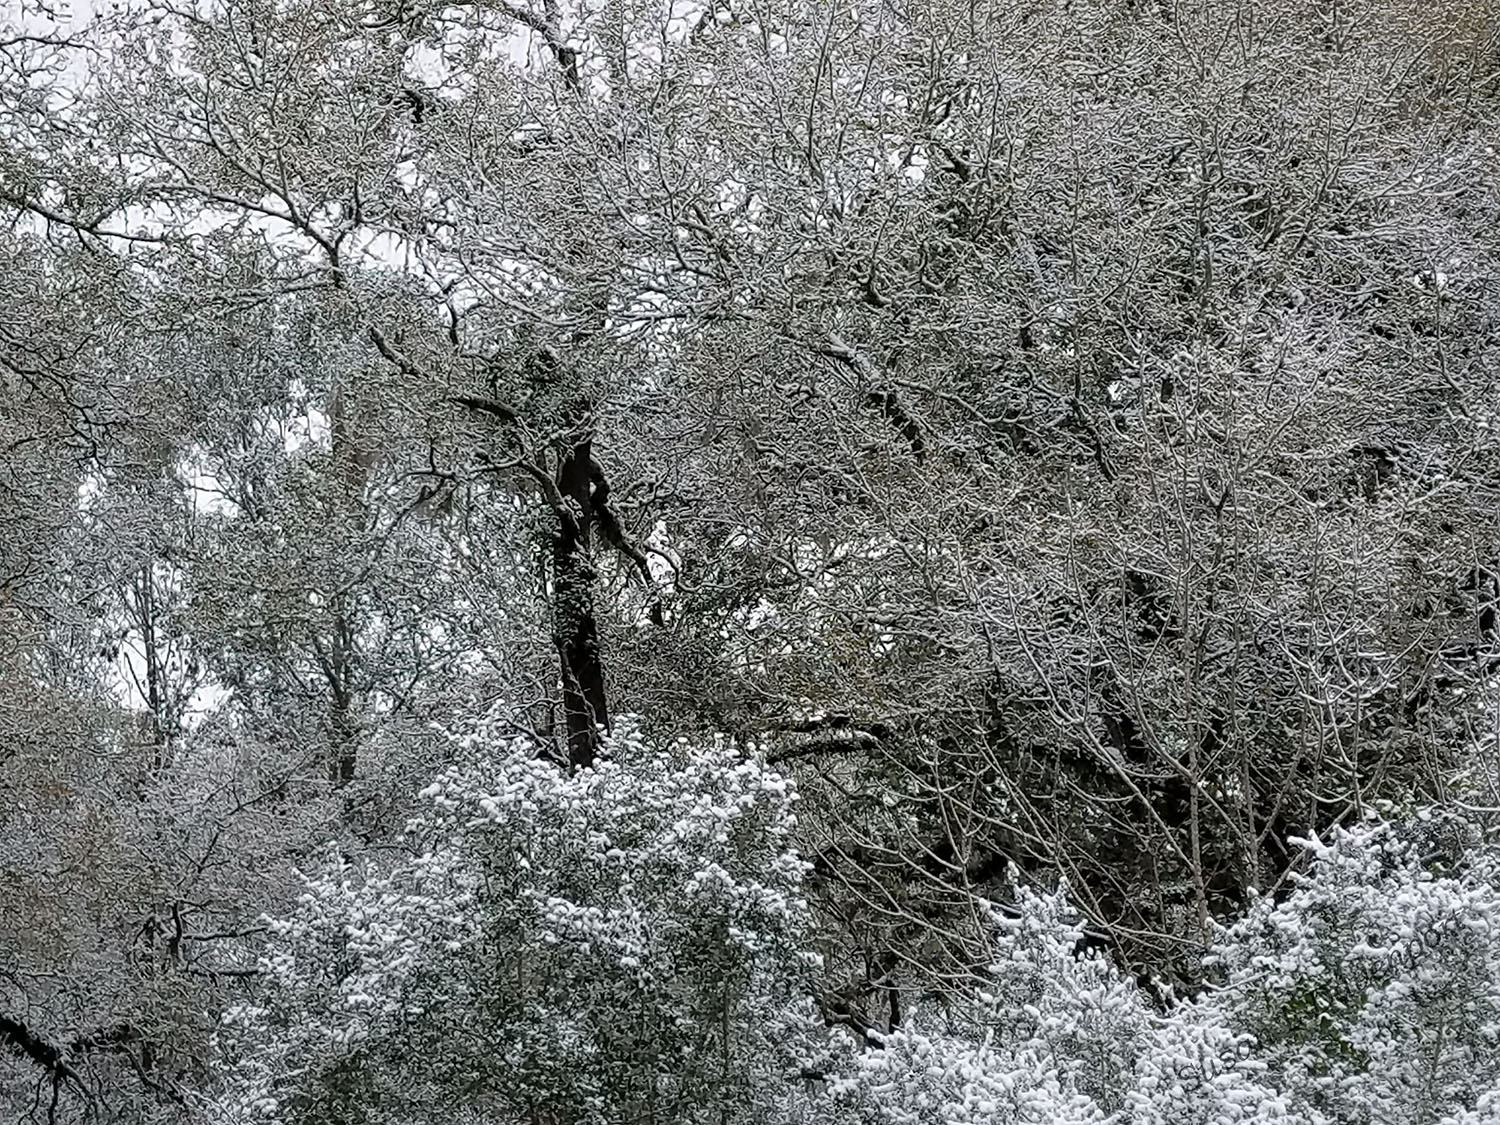 Lacy Branches - Photo by Susan L. Davenport